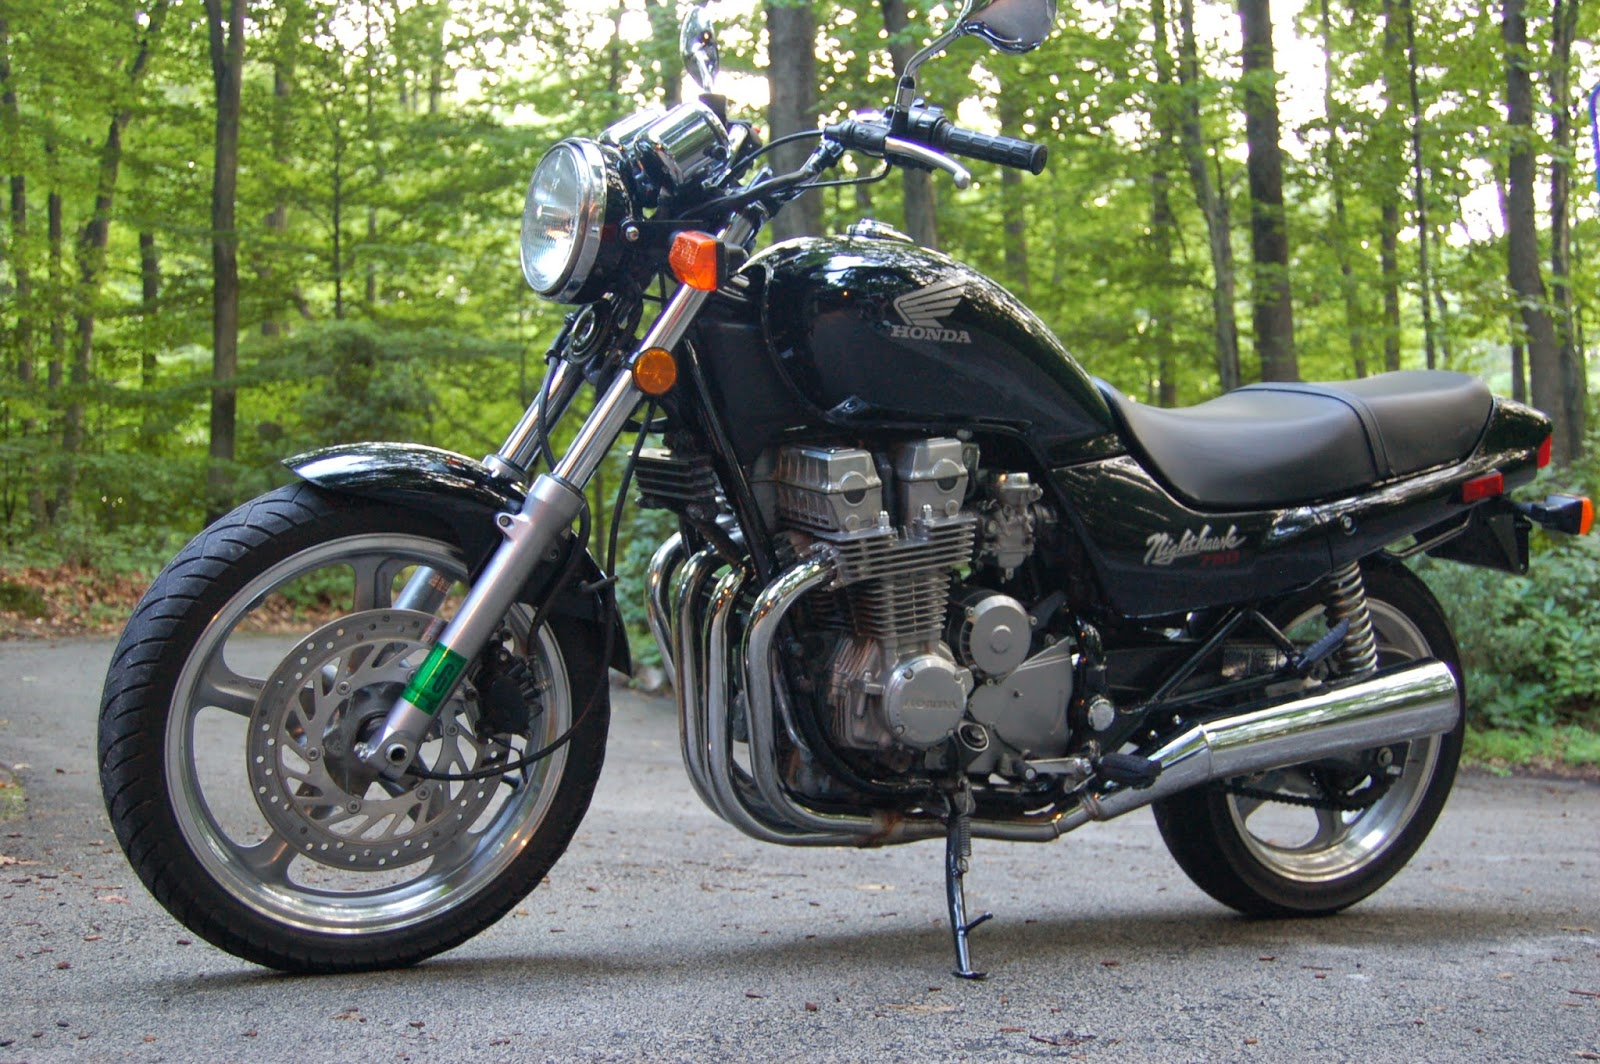 The Honda Nighthawk 750 Is Grandson Of Most Significant Motorcycle Ever Made 1970 Cb750